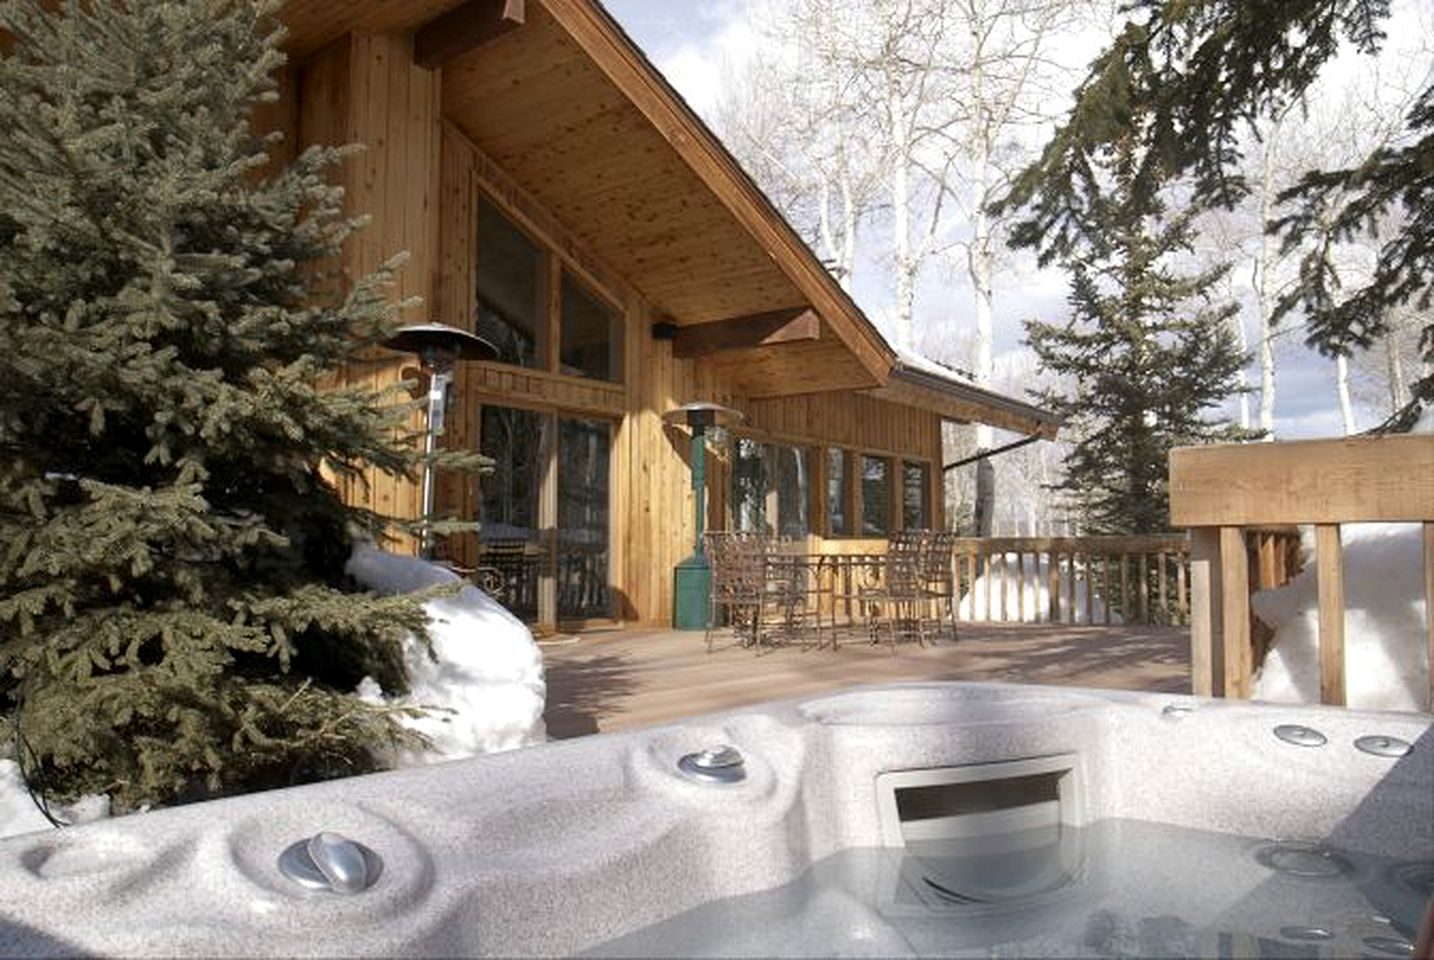 Cabins (Snowmass Village, Colorado, United States)